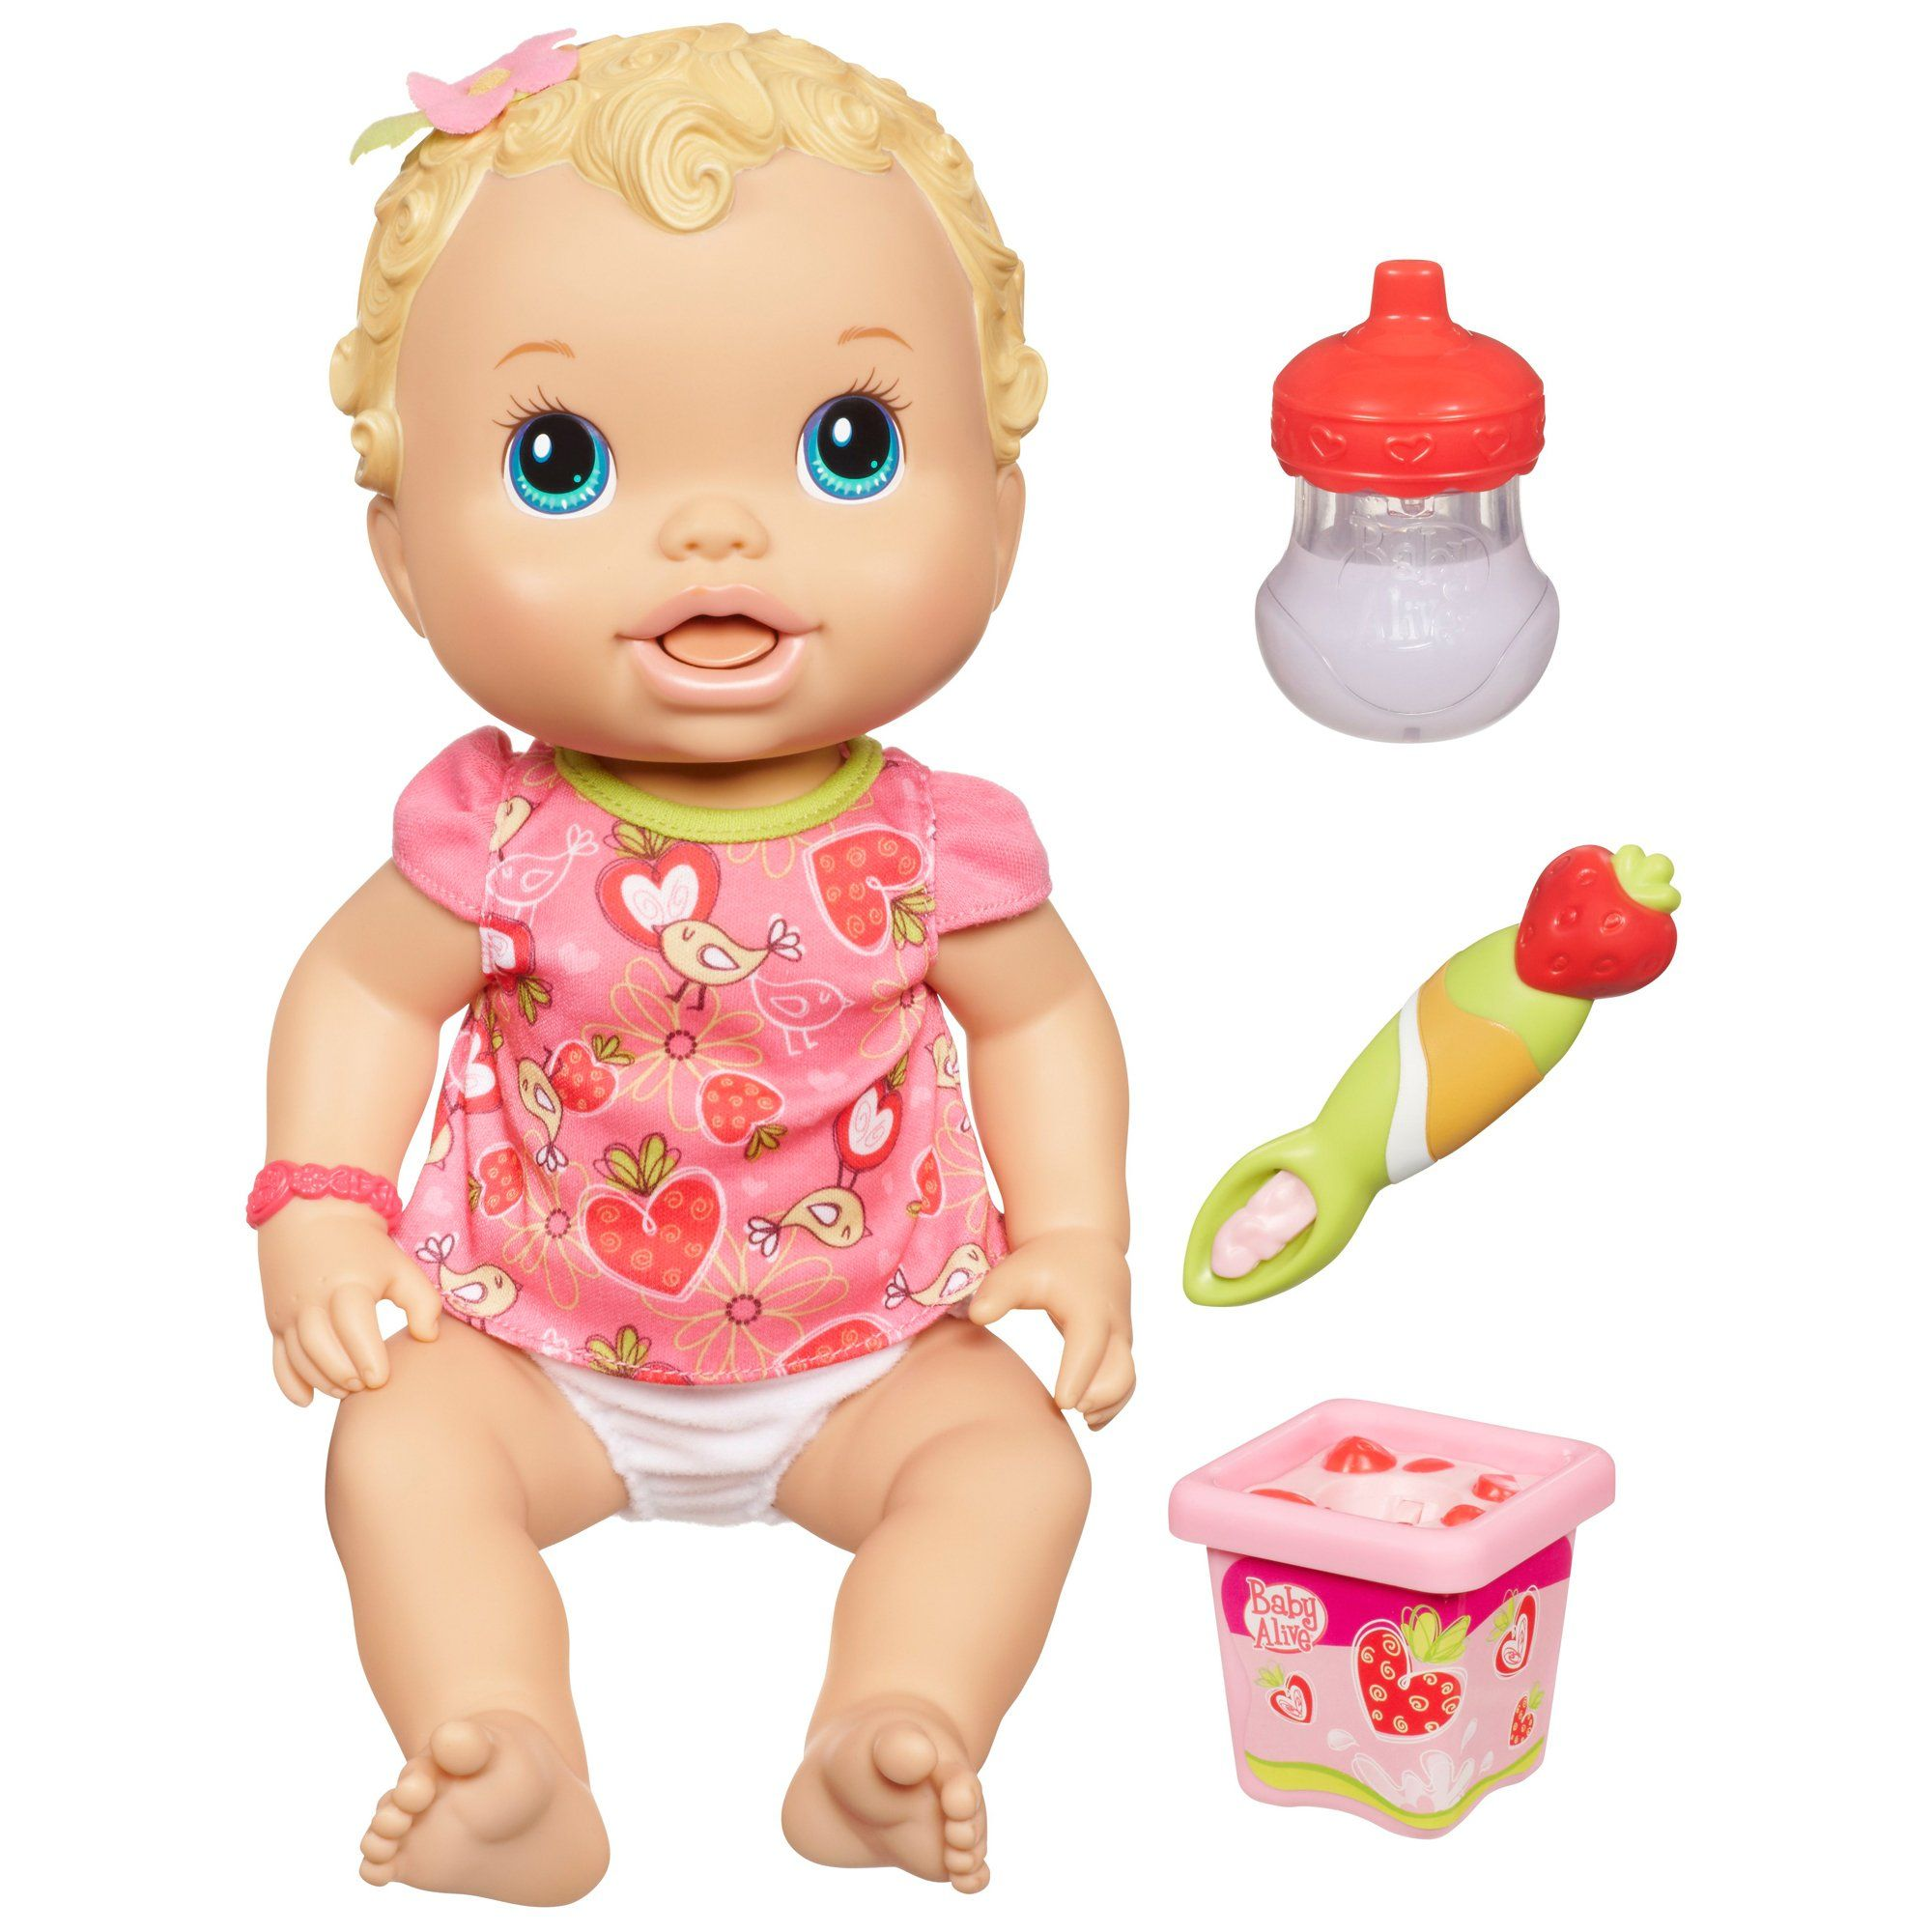 Baby Alive Baby All Gone Doll Blonde Baby Doll Accessories Baby Dolls Baby Alive Dolls